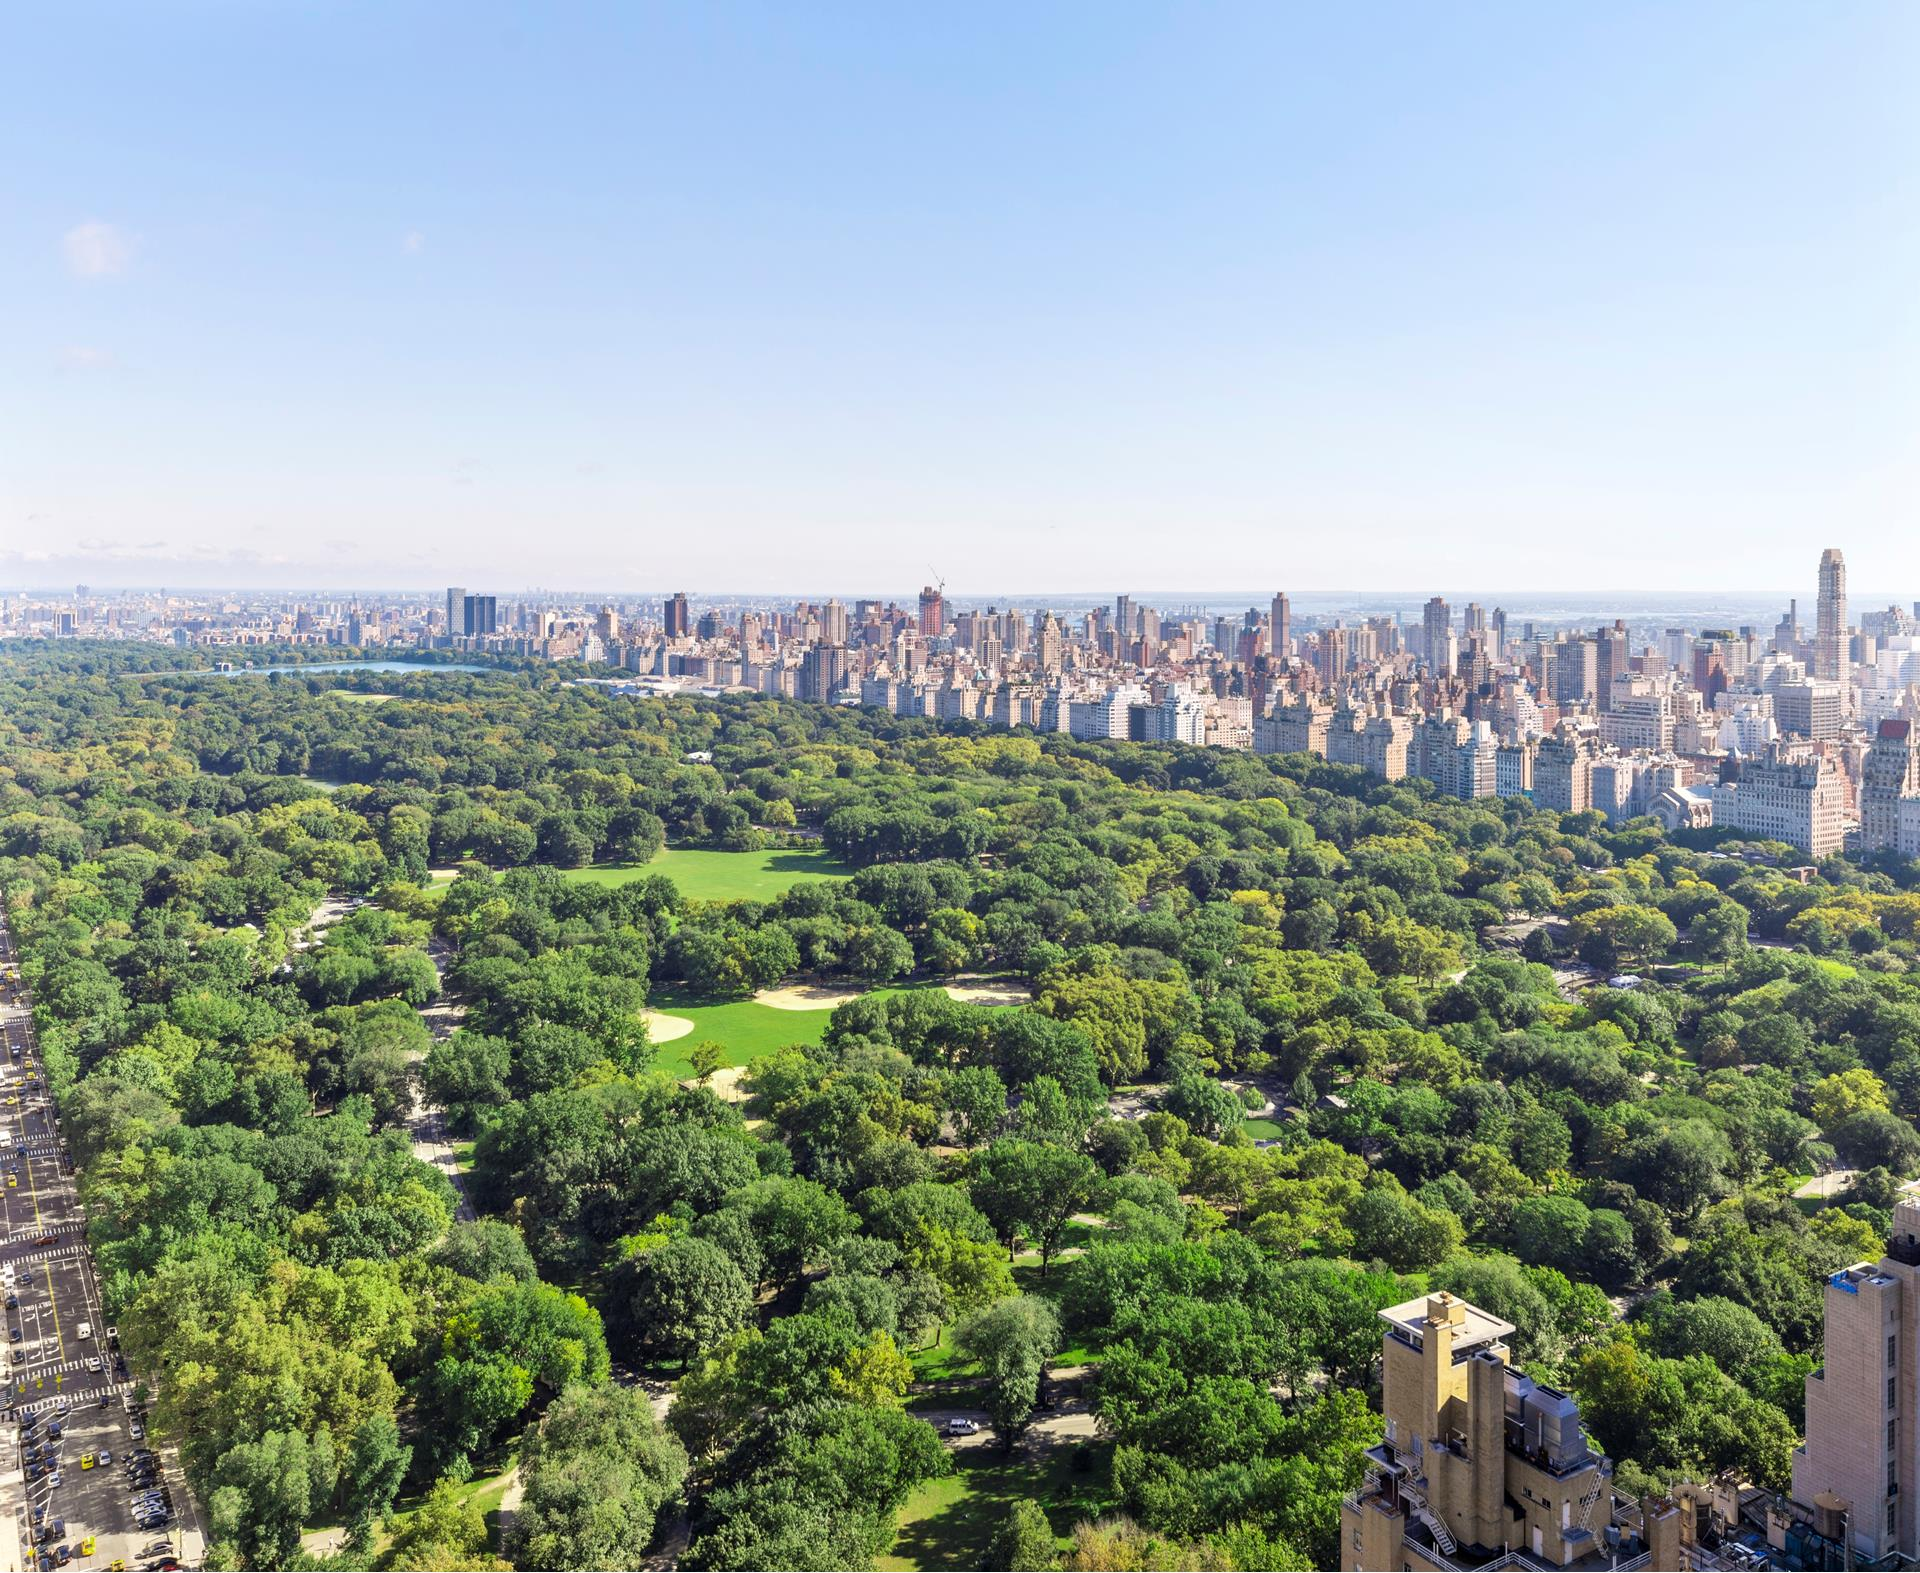 Stunning Billionaires row condominium has sweeping, unobstructed views of Central Park, Columbus Circle, and the gorgeous skyline. The $239 million dollar views can be yours!Enjoy breathtaking vistas that span to the north from the George Washington Bridge to the southern tip of New York City and beyond. A formal entrance foyer leads you into an expansive living room with three exposures and an oversize bay window. The bedrooms are both spacious with corner exposures, and their split layout is optimal for privacy and comfort. The extra-large master suite has expansive views of Central Park, while the second bedroom gets a bird's eye view of the Manhattan Skyline and World Trade Center. Ample custom closets, marble bathrooms, herringbone hardwood floors, hi fidelity audio/video, and a vented washer/dryer complete this home.Central Park Place is one of Manhattan's most desirable condominiums. Services include a 24-hour doorman; health club with indoor swimming pool, sauna, boxing room, massage room, yoga room; terrace; renovated party room/lounge; overnight guest suites; and even a private entrance to subway.